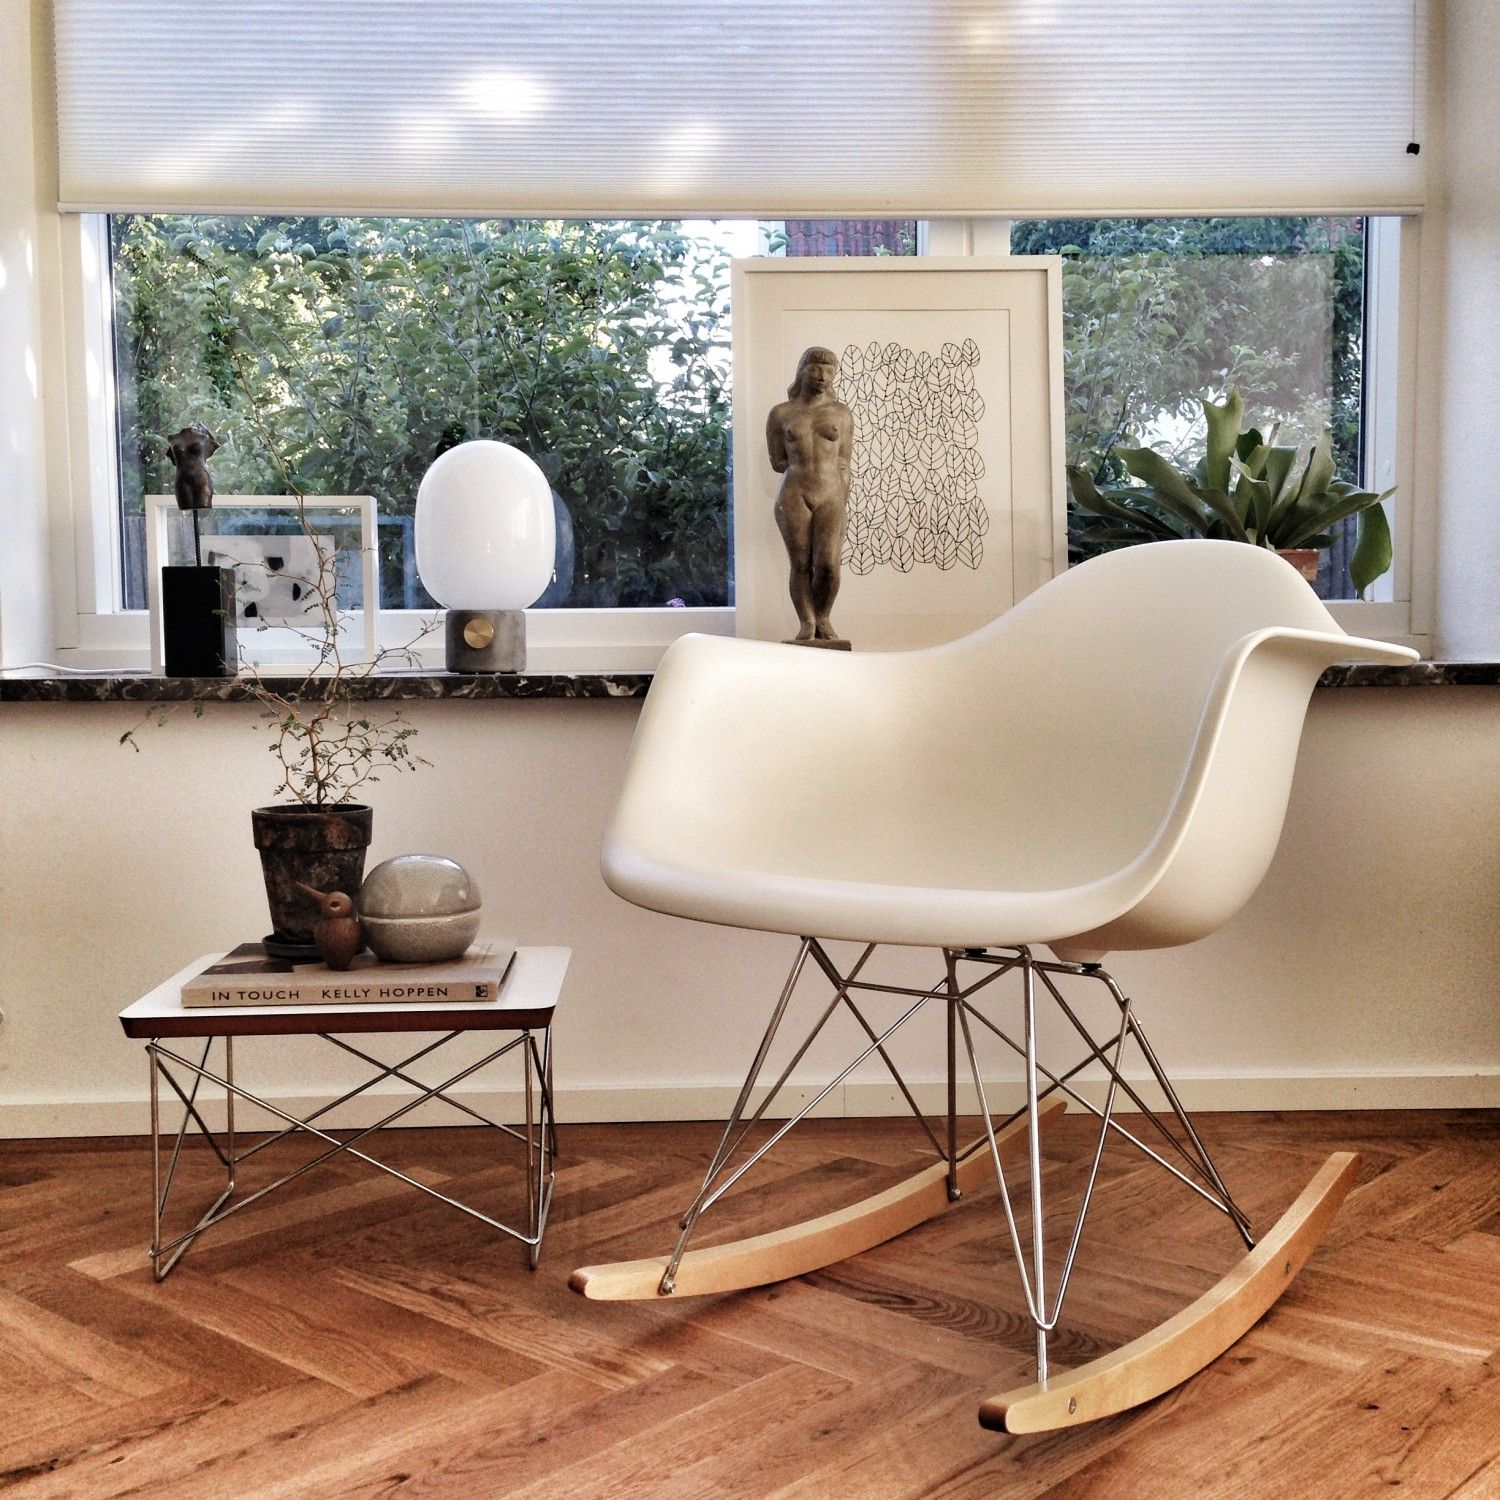 Occasionel table LTR Ed Vitra 1950 RAR Chair Ed Vitra 1950